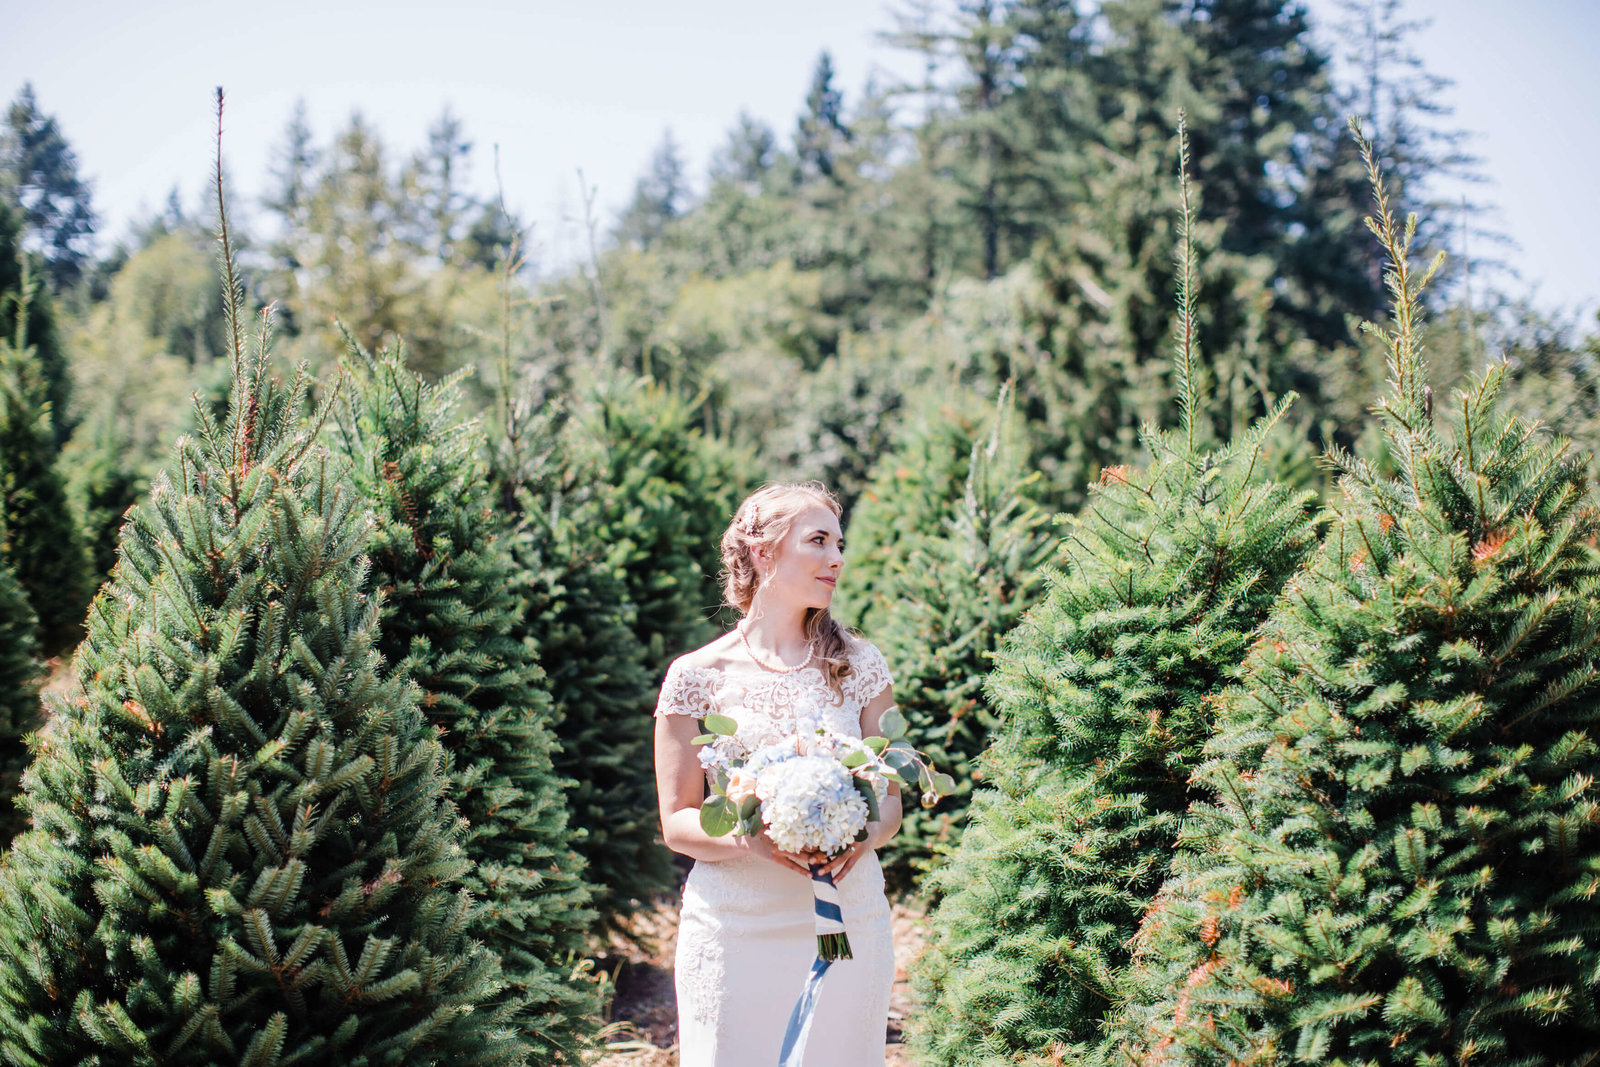 Trinity-tree-farm-wedding-photos-by-Adina-Preston-Photography-2019-159